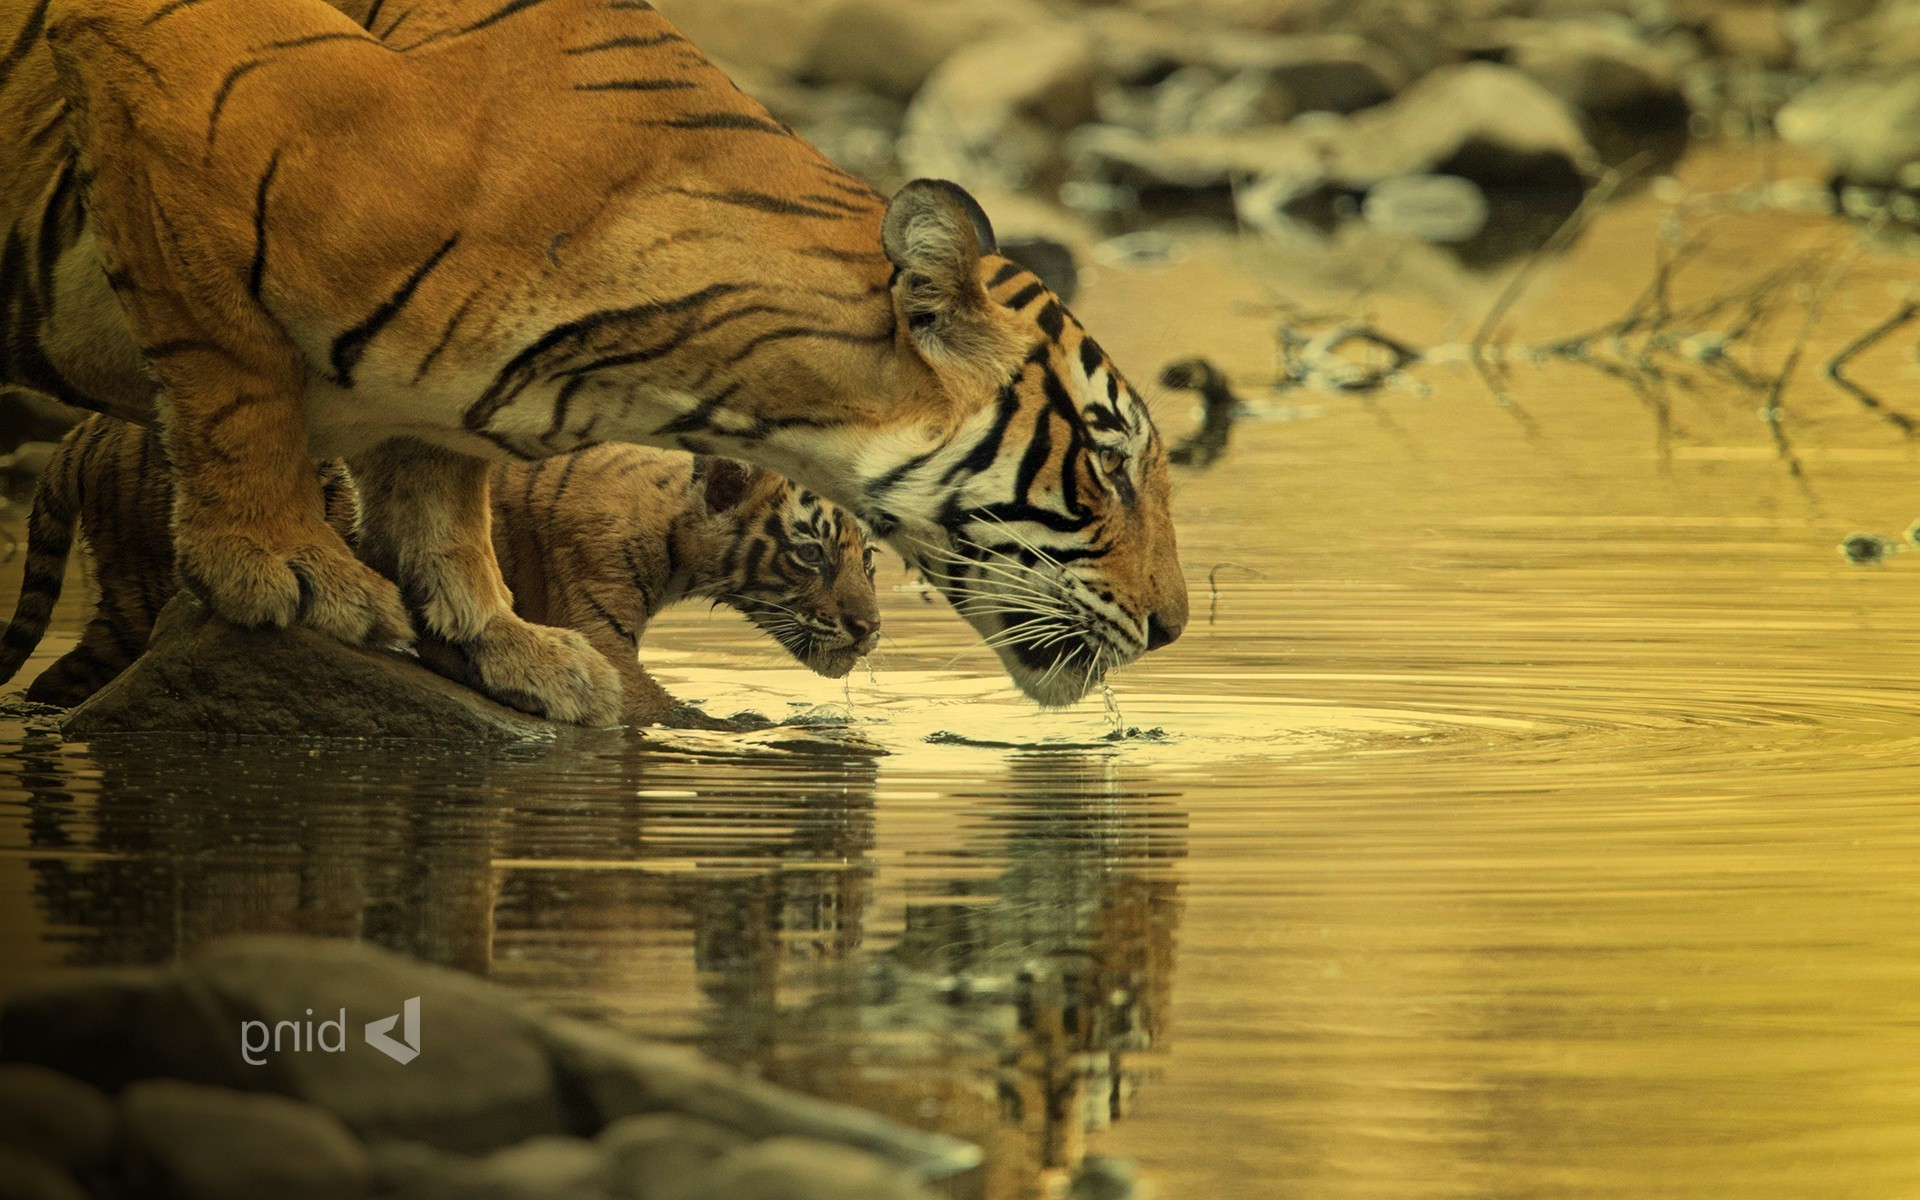 Res: 1920x1200, tiger bing wallpapers big cats baby animals water animals Wallpapers HD /  Desktop and Mobile Backgrounds